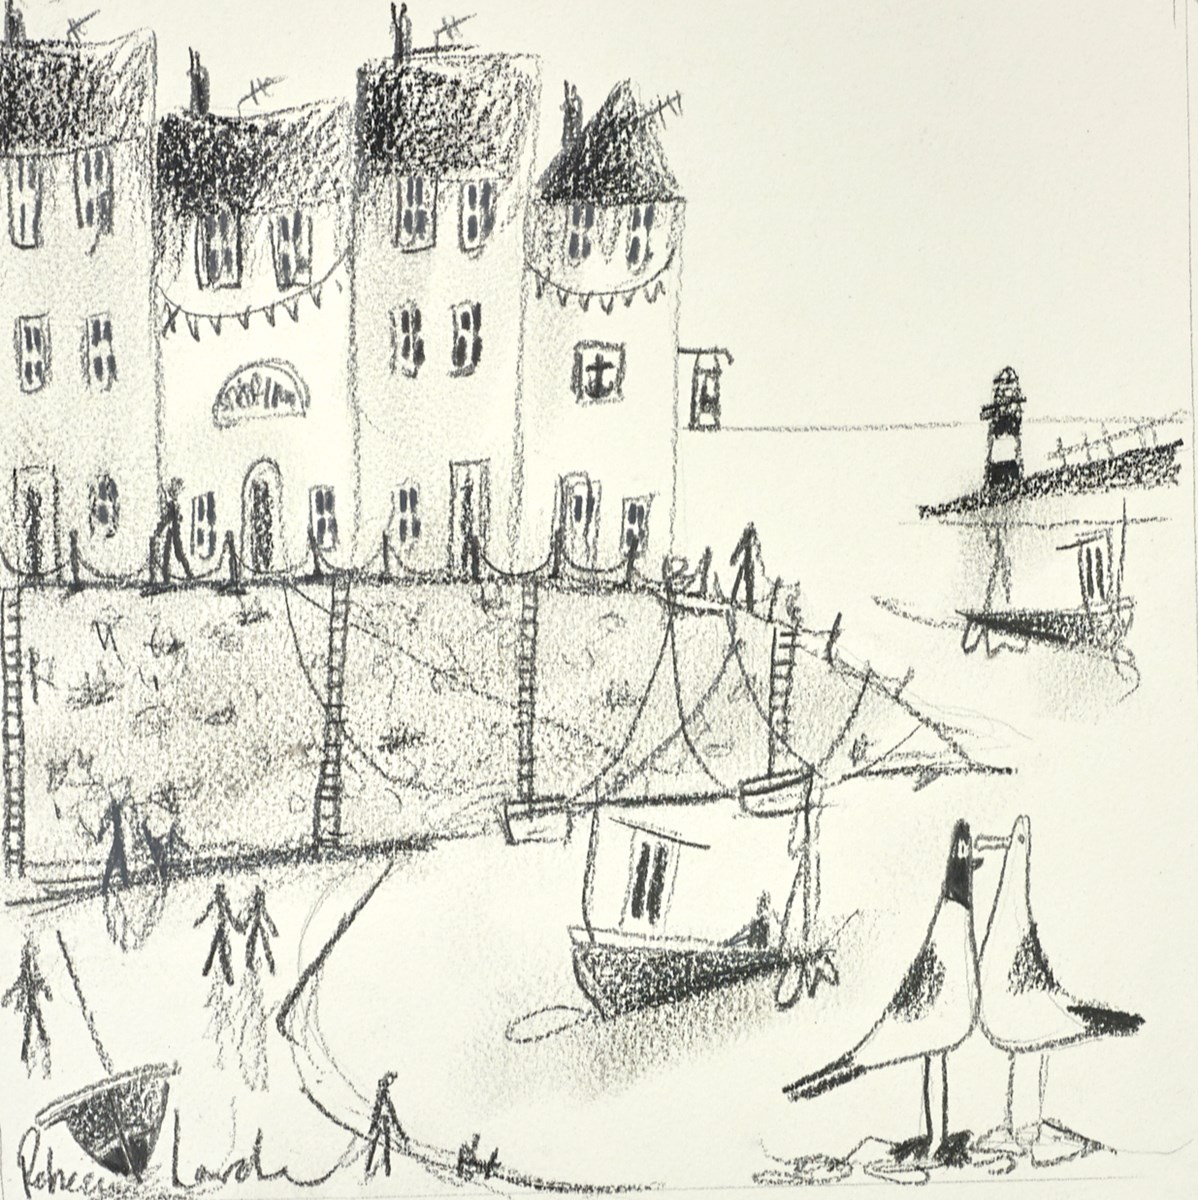 Seagulls in the Harbour Sketch